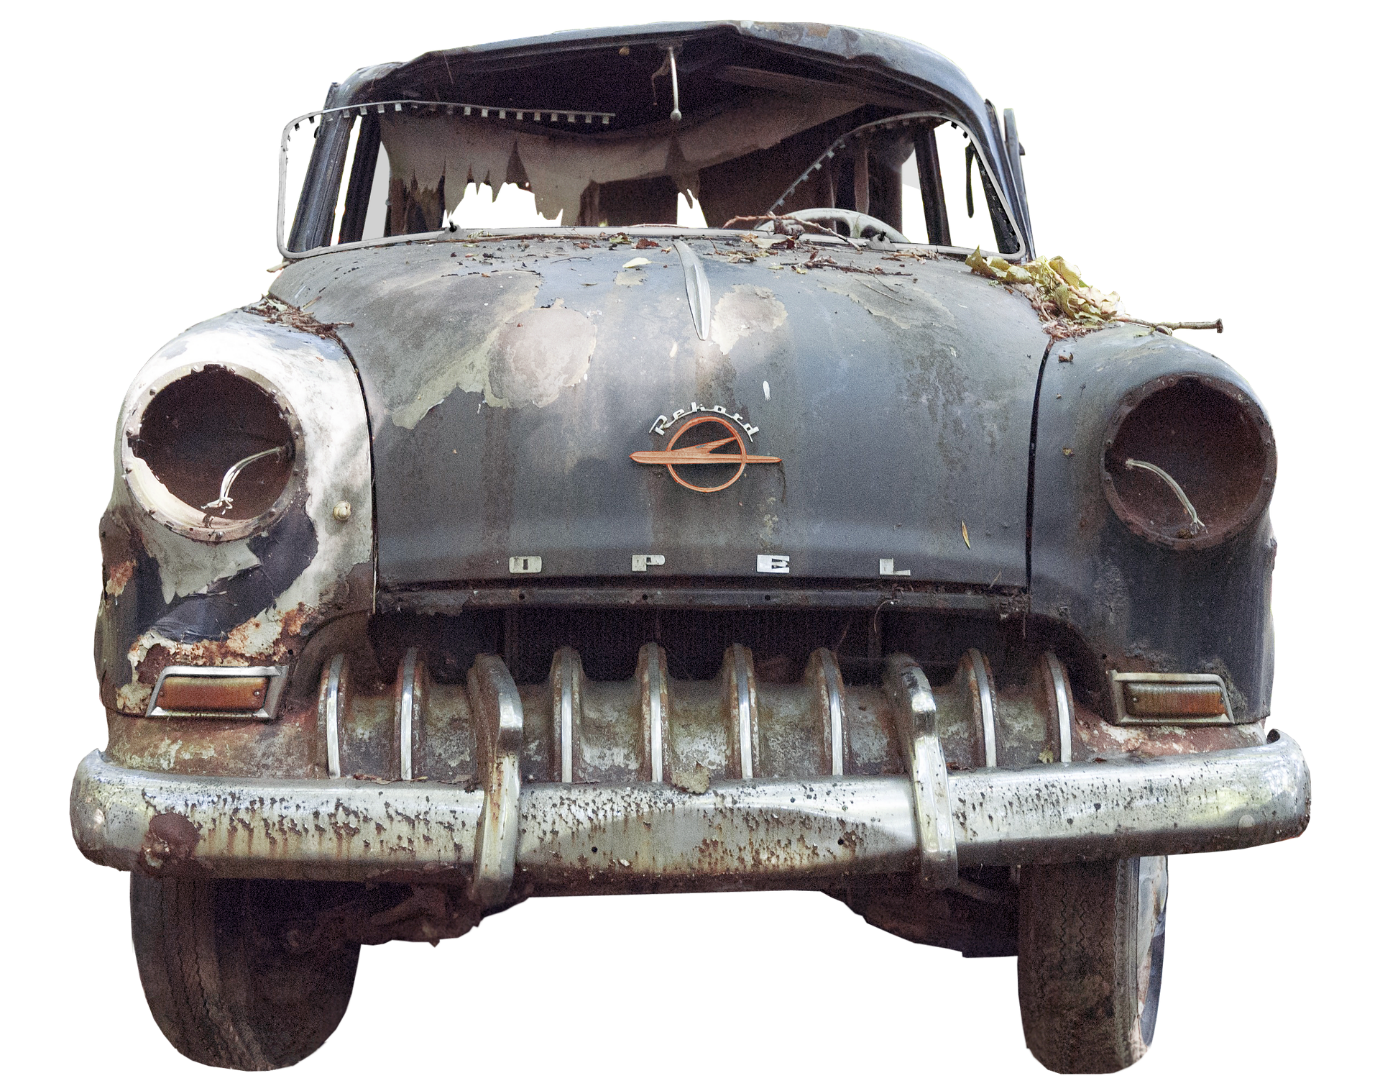 Find Out Now, How to Make Cash Out of Your Junk Car?